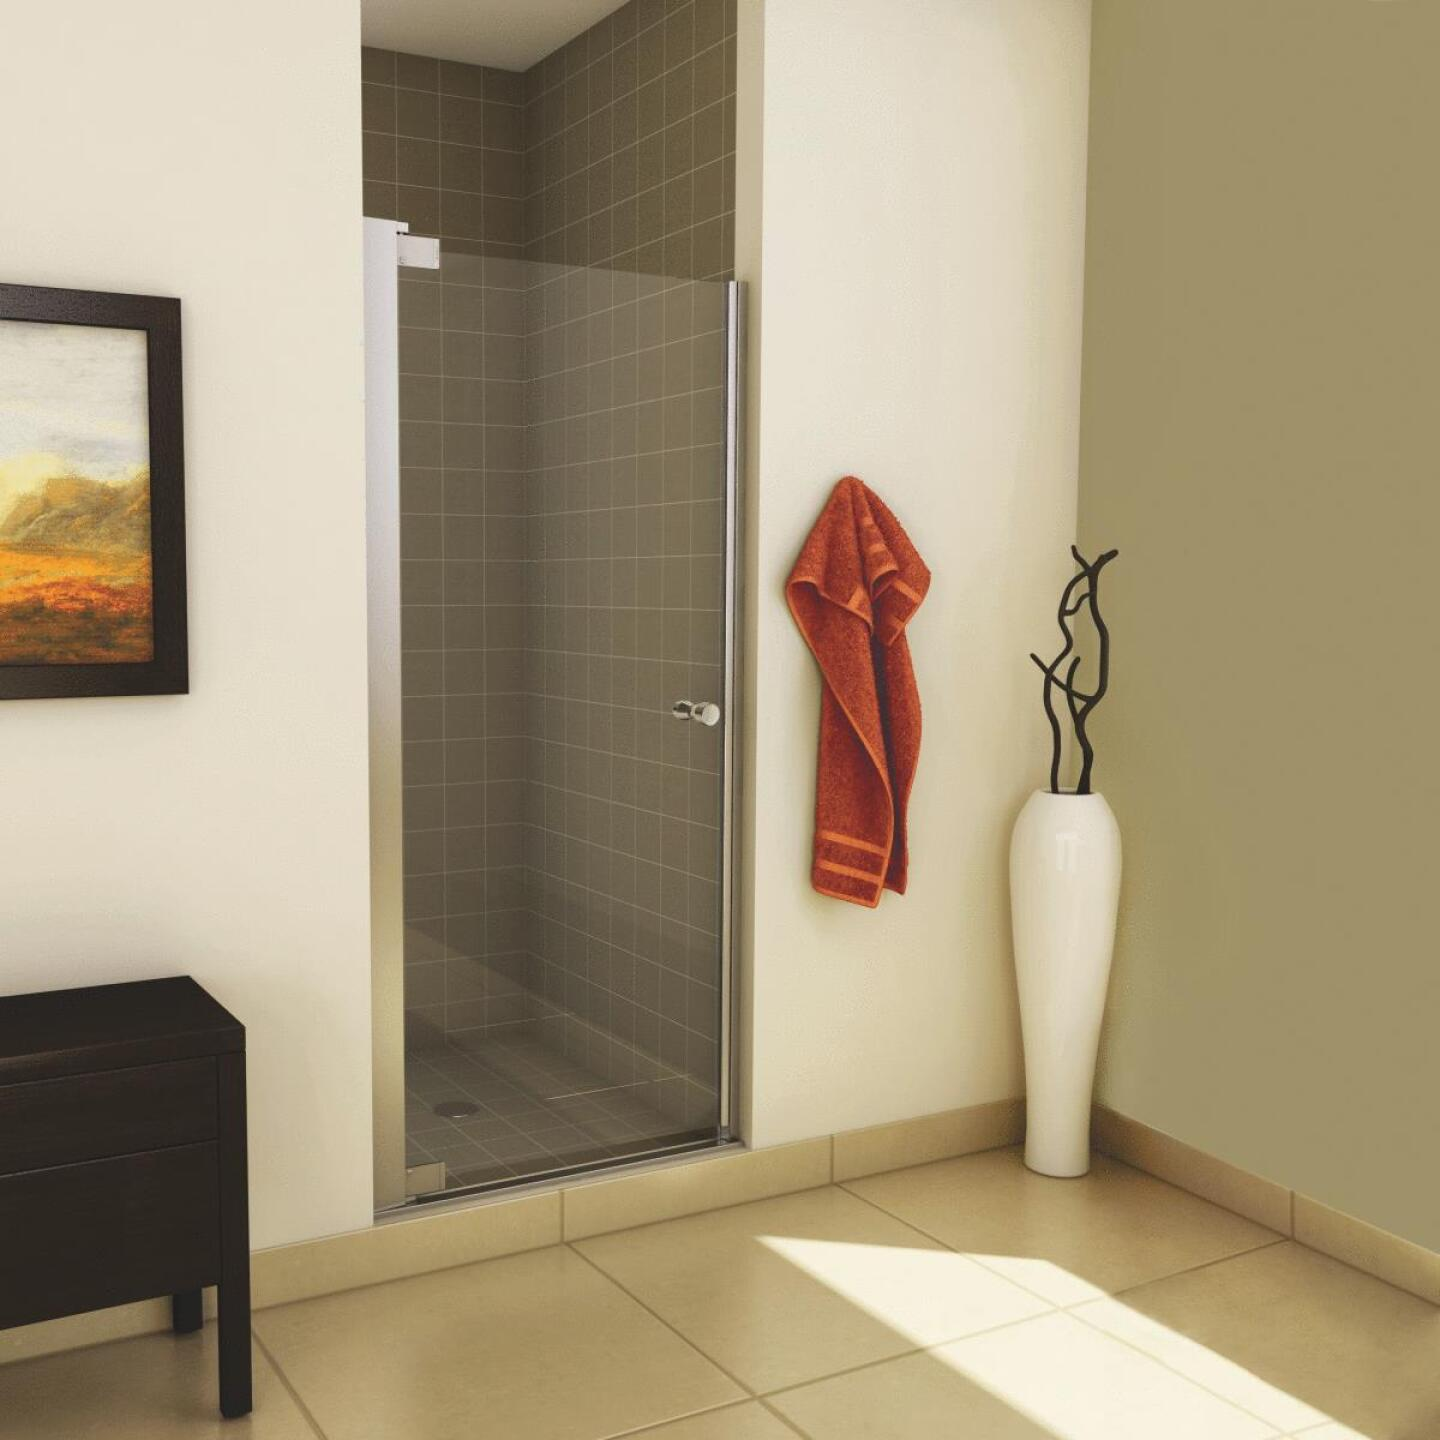 Maax Madono 33.5 In. W. X 67 In. H. Chrome Clear Glass Pivot Shower Door Image 2